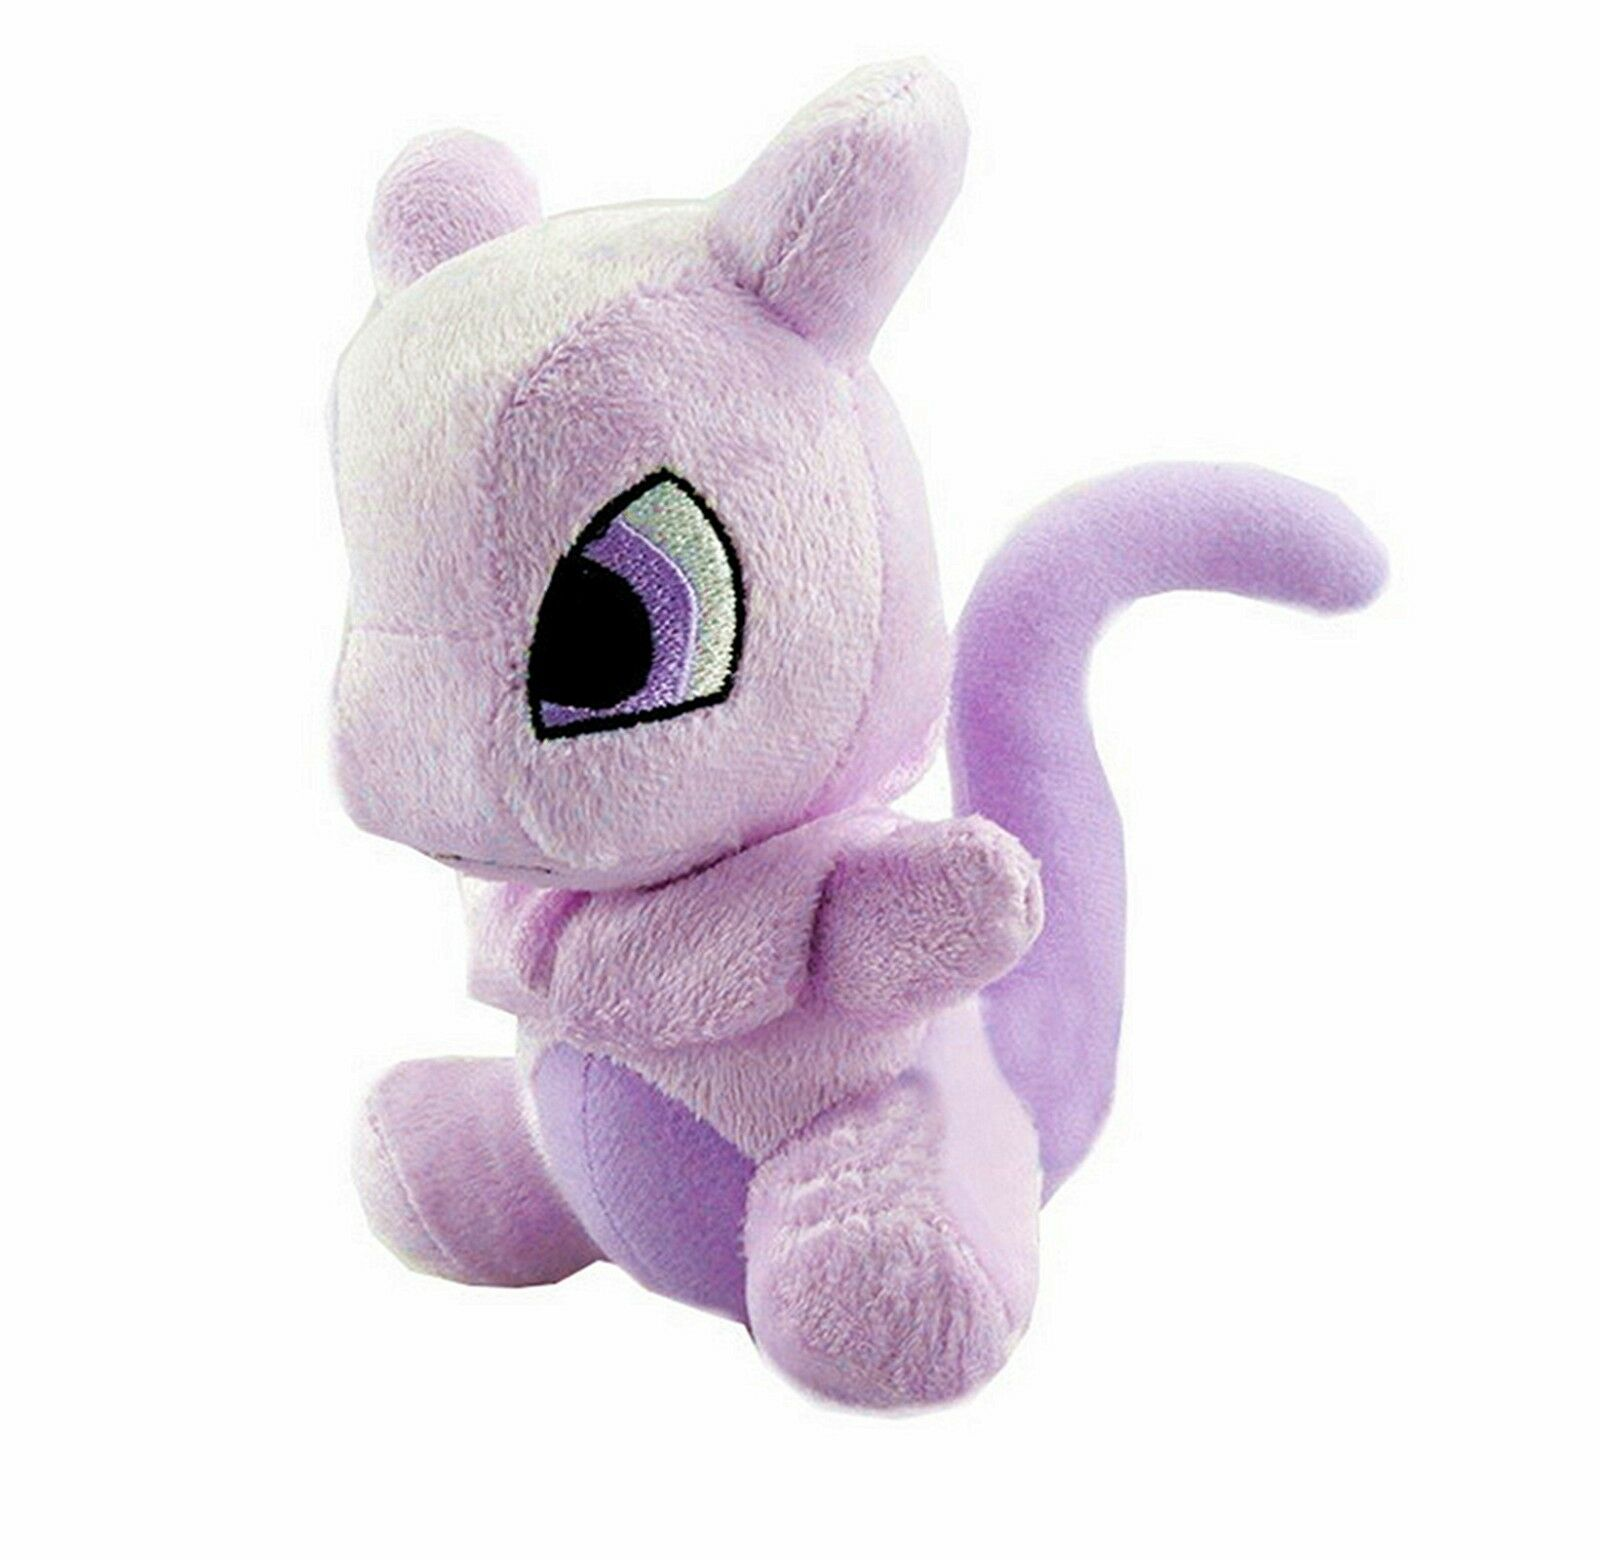 Soft Toys With Pockets : Pokemon quot cm mewtwo pocket monster soft stuffed toy